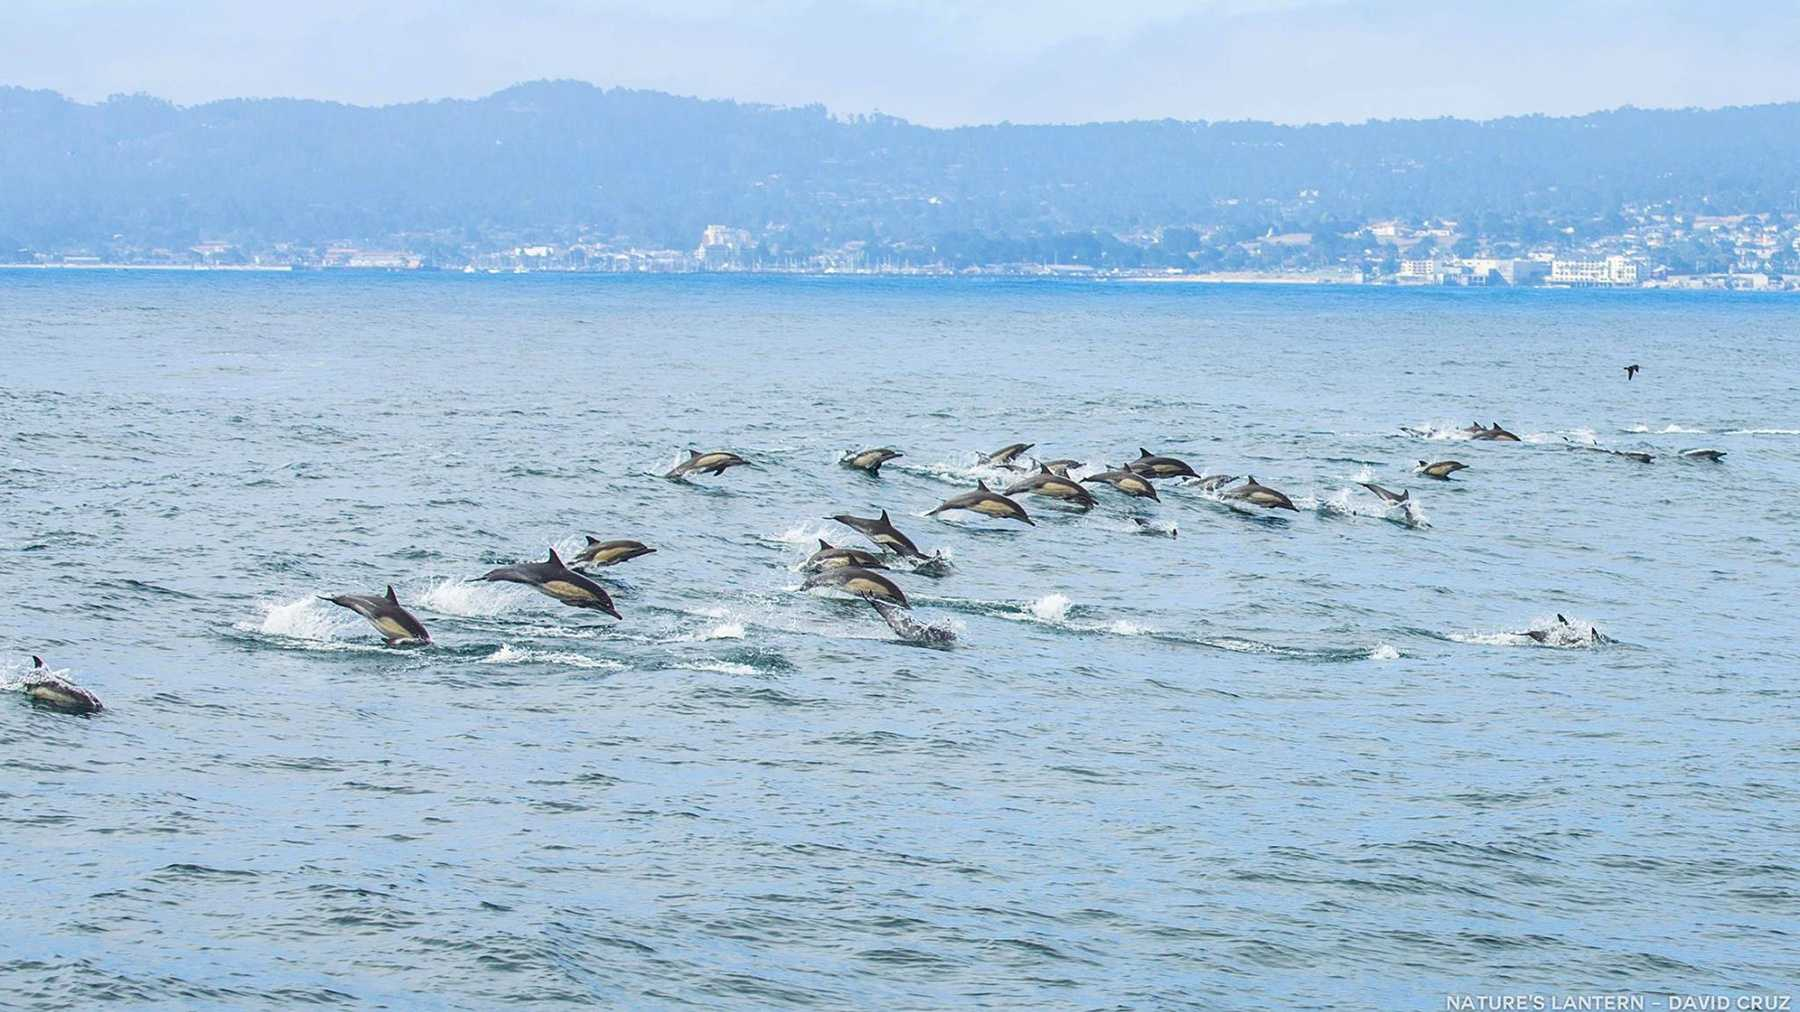 Dolphins swim past Monterey and Pacific Grove.  Photo by David Cruz / Nature's Lantern